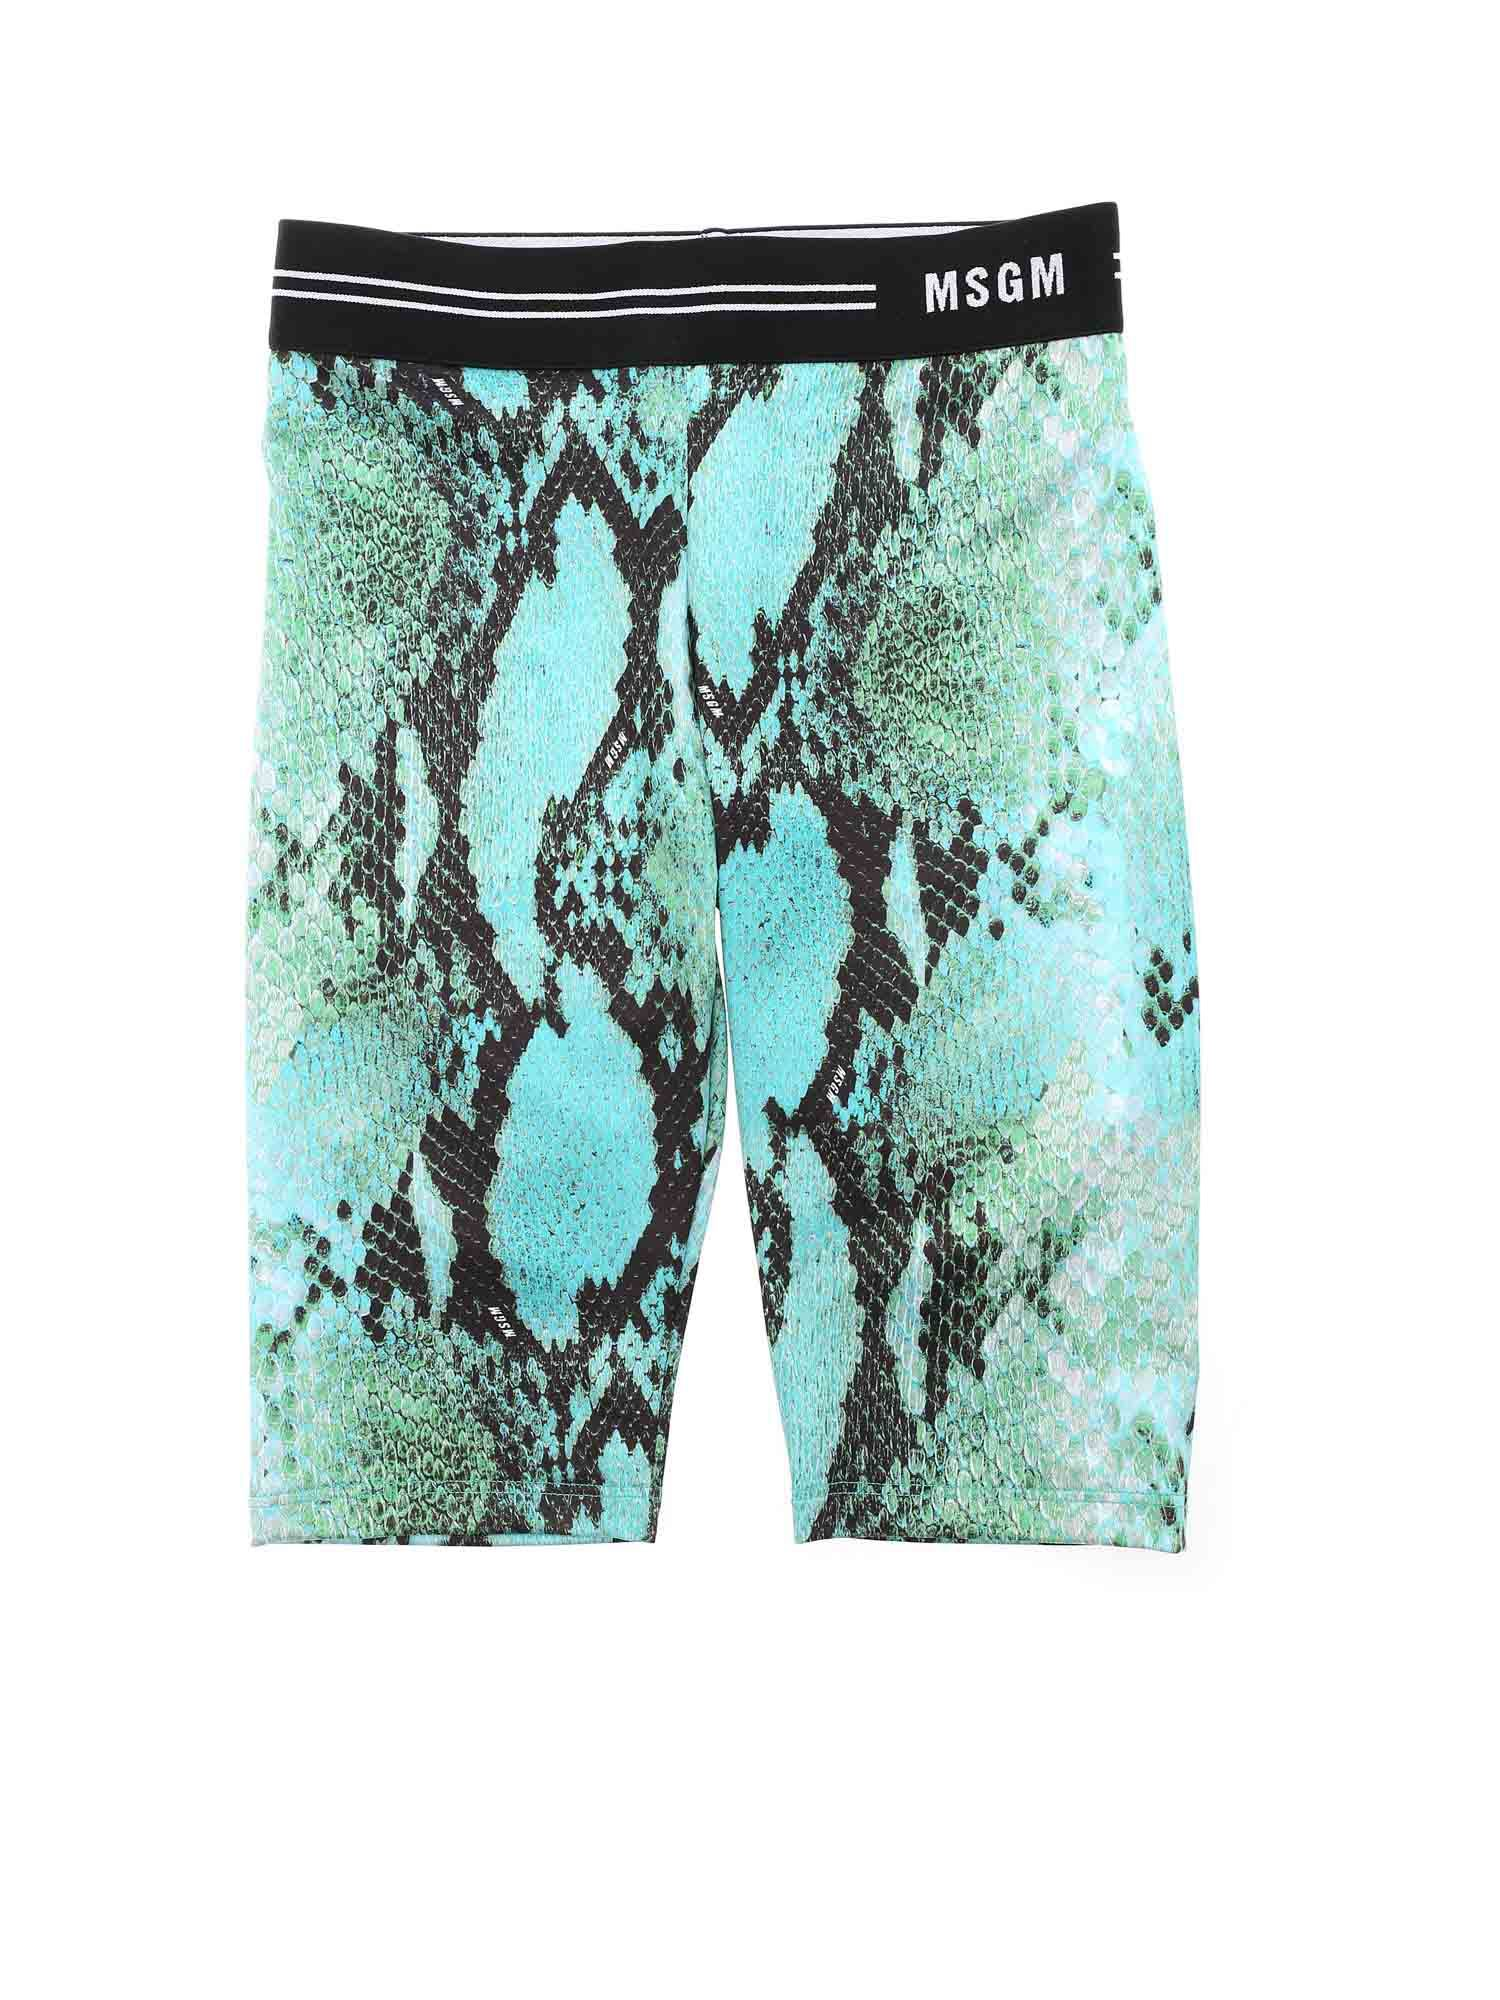 Msgm REPTILE PRINT LEGGINGS IN LIGHT BLUE